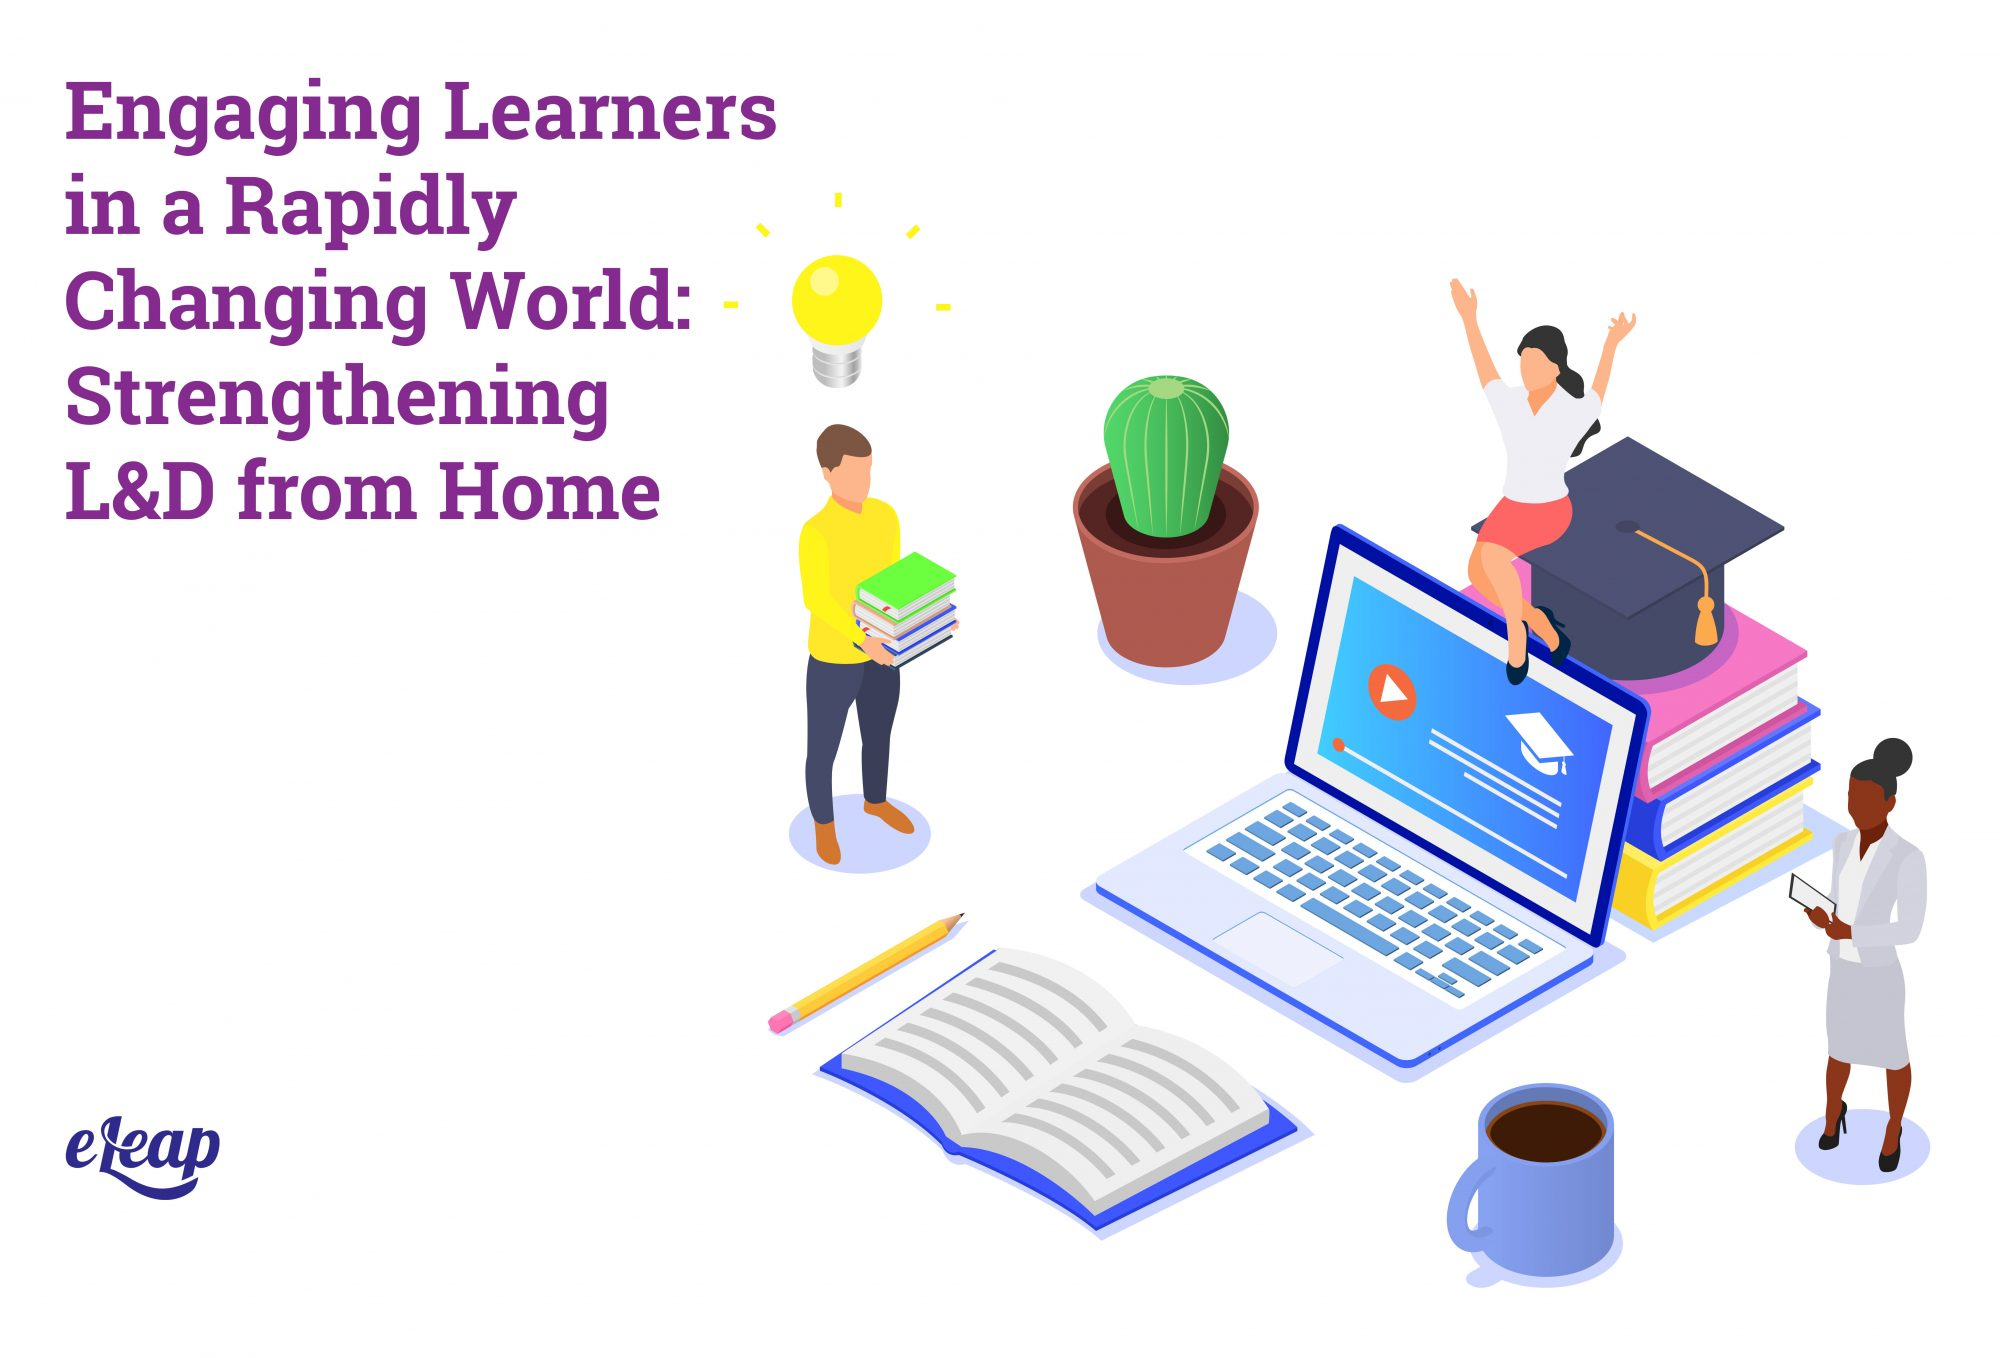 Engaging Learning in a Rapidly Changing World: Strengthening At-Home L&D